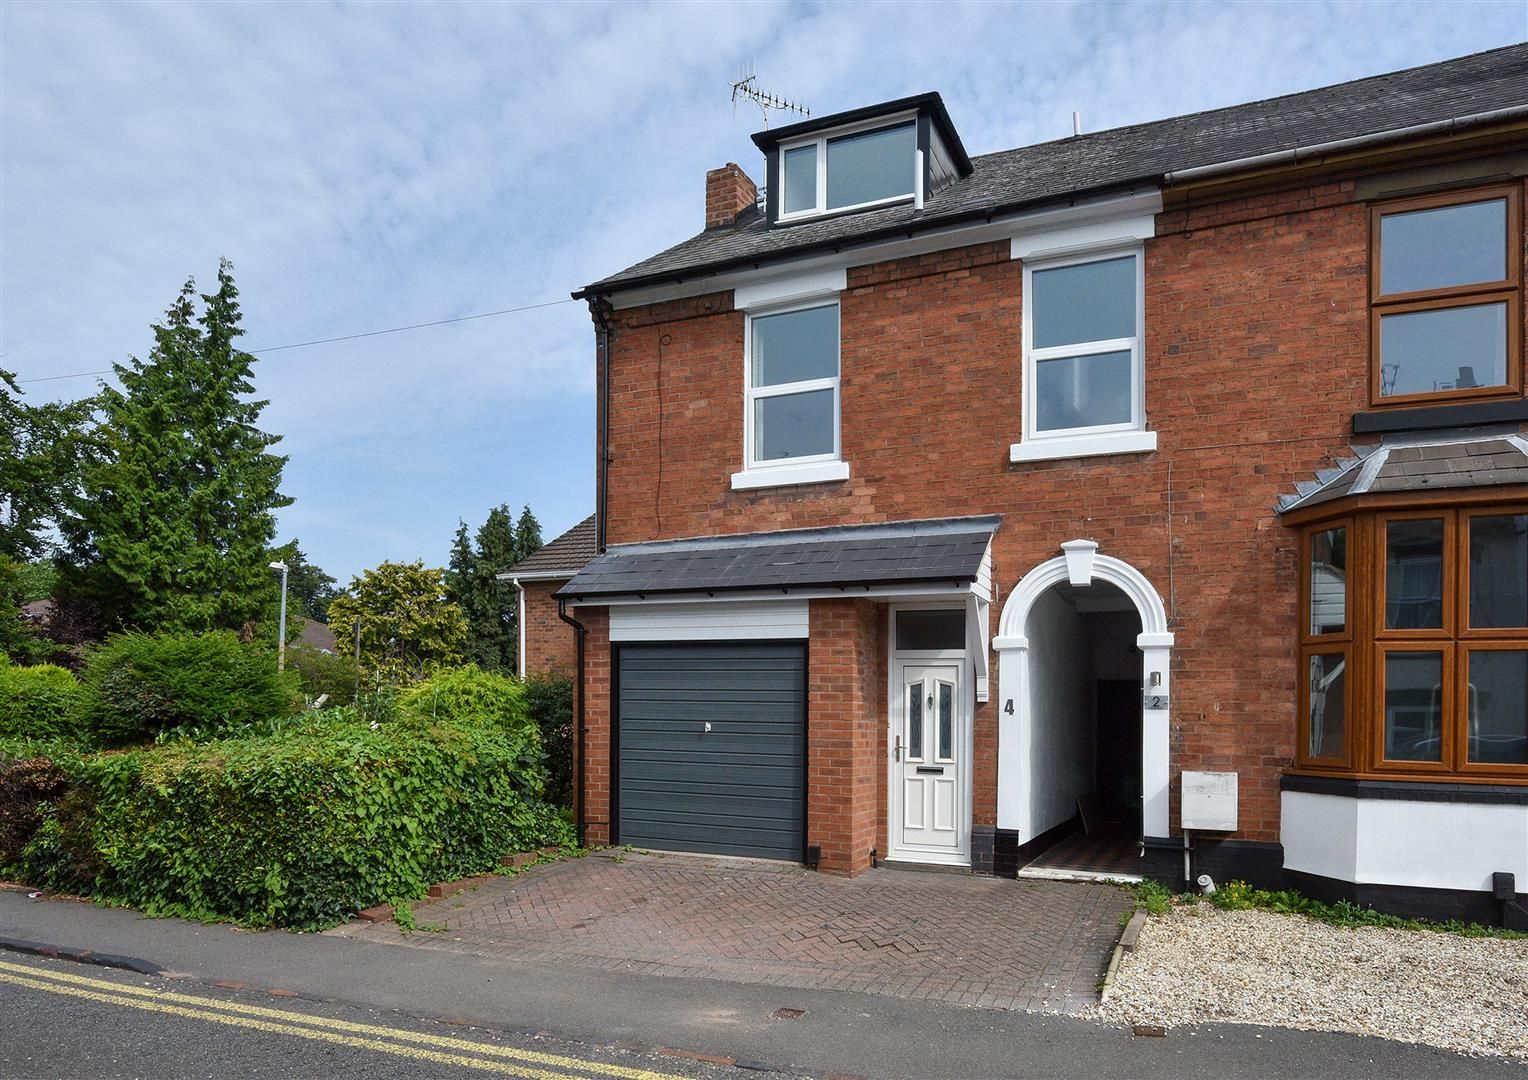 4 bed semi-detached for sale in Old Quarter 3